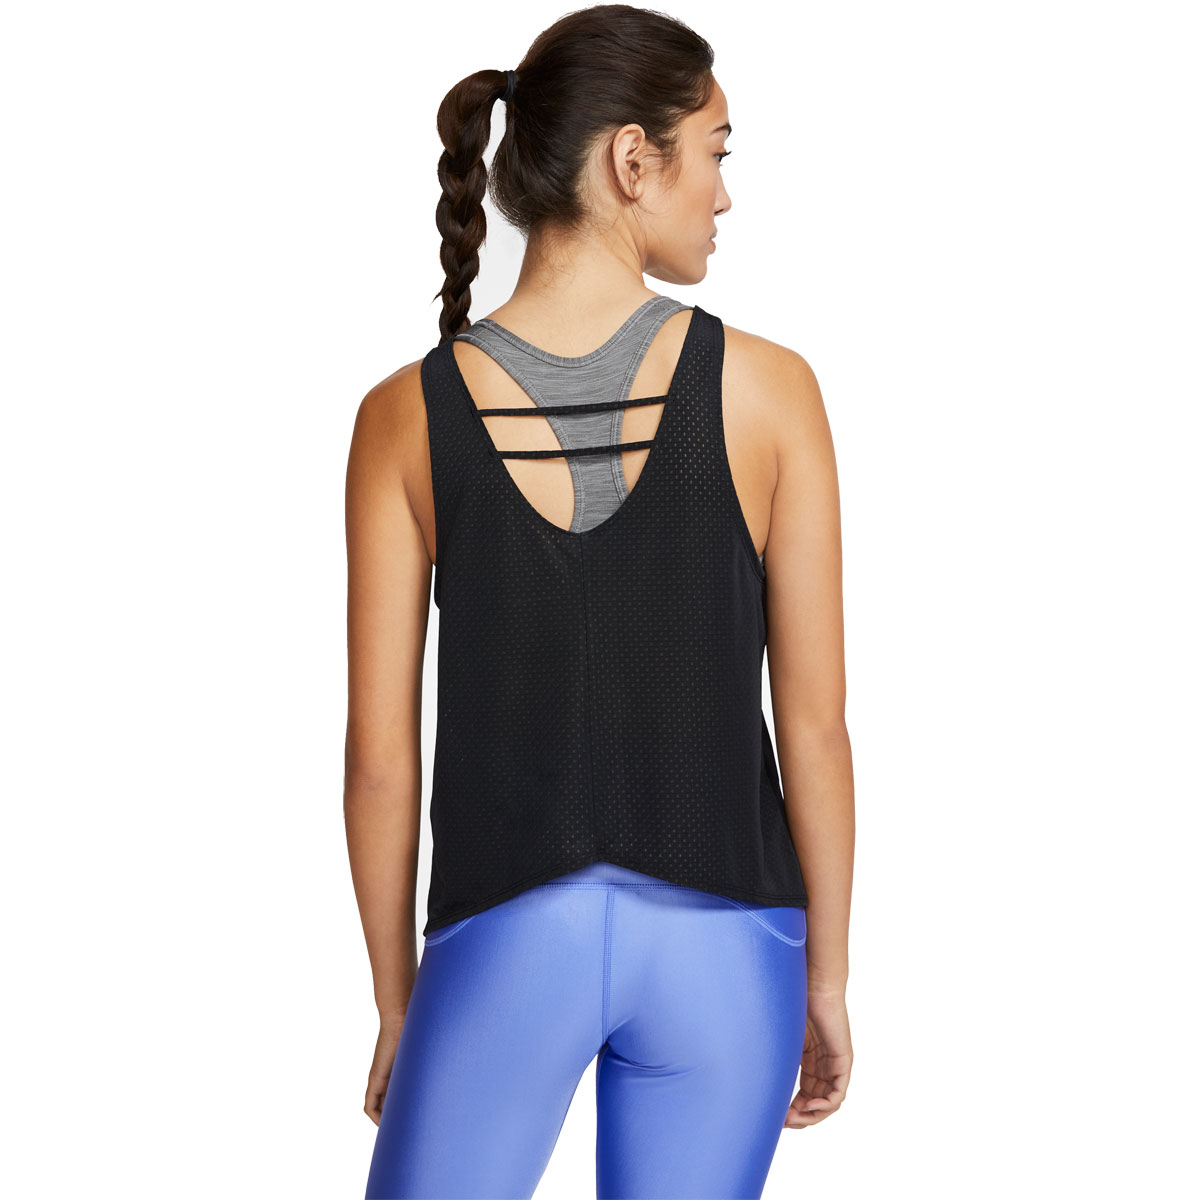 Women's Nike Breathe Running Tank - Color: Black/Reflective Silver - Size: XS, Black/Reflective Silver, large, image 2